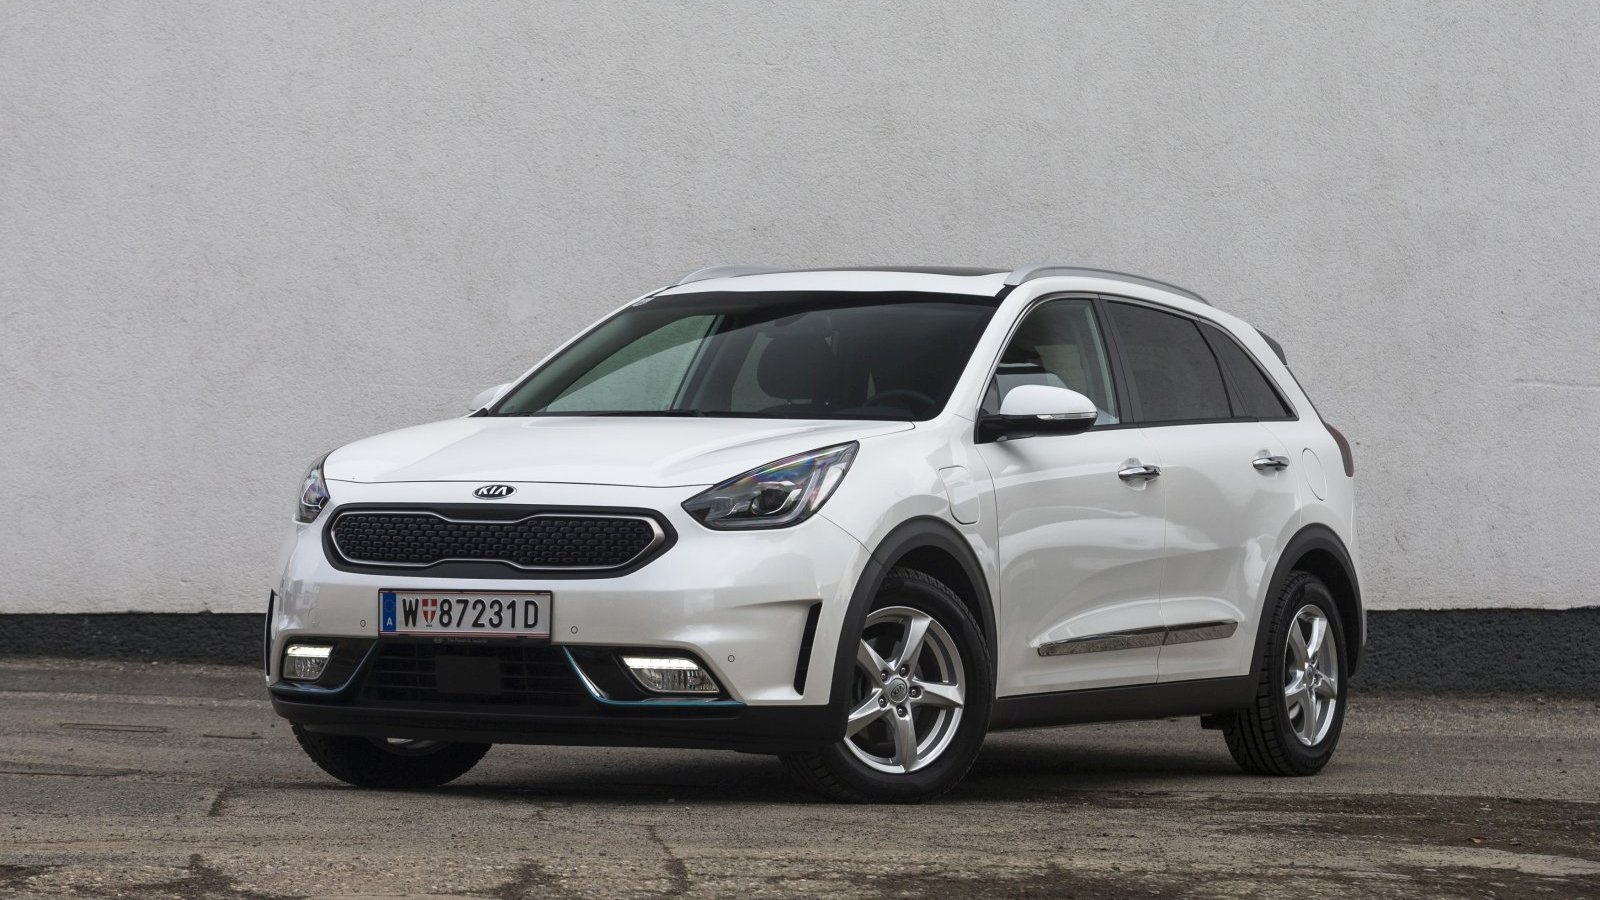 test kia niro 1 6 gdi plug in hybrid platin alles auto. Black Bedroom Furniture Sets. Home Design Ideas